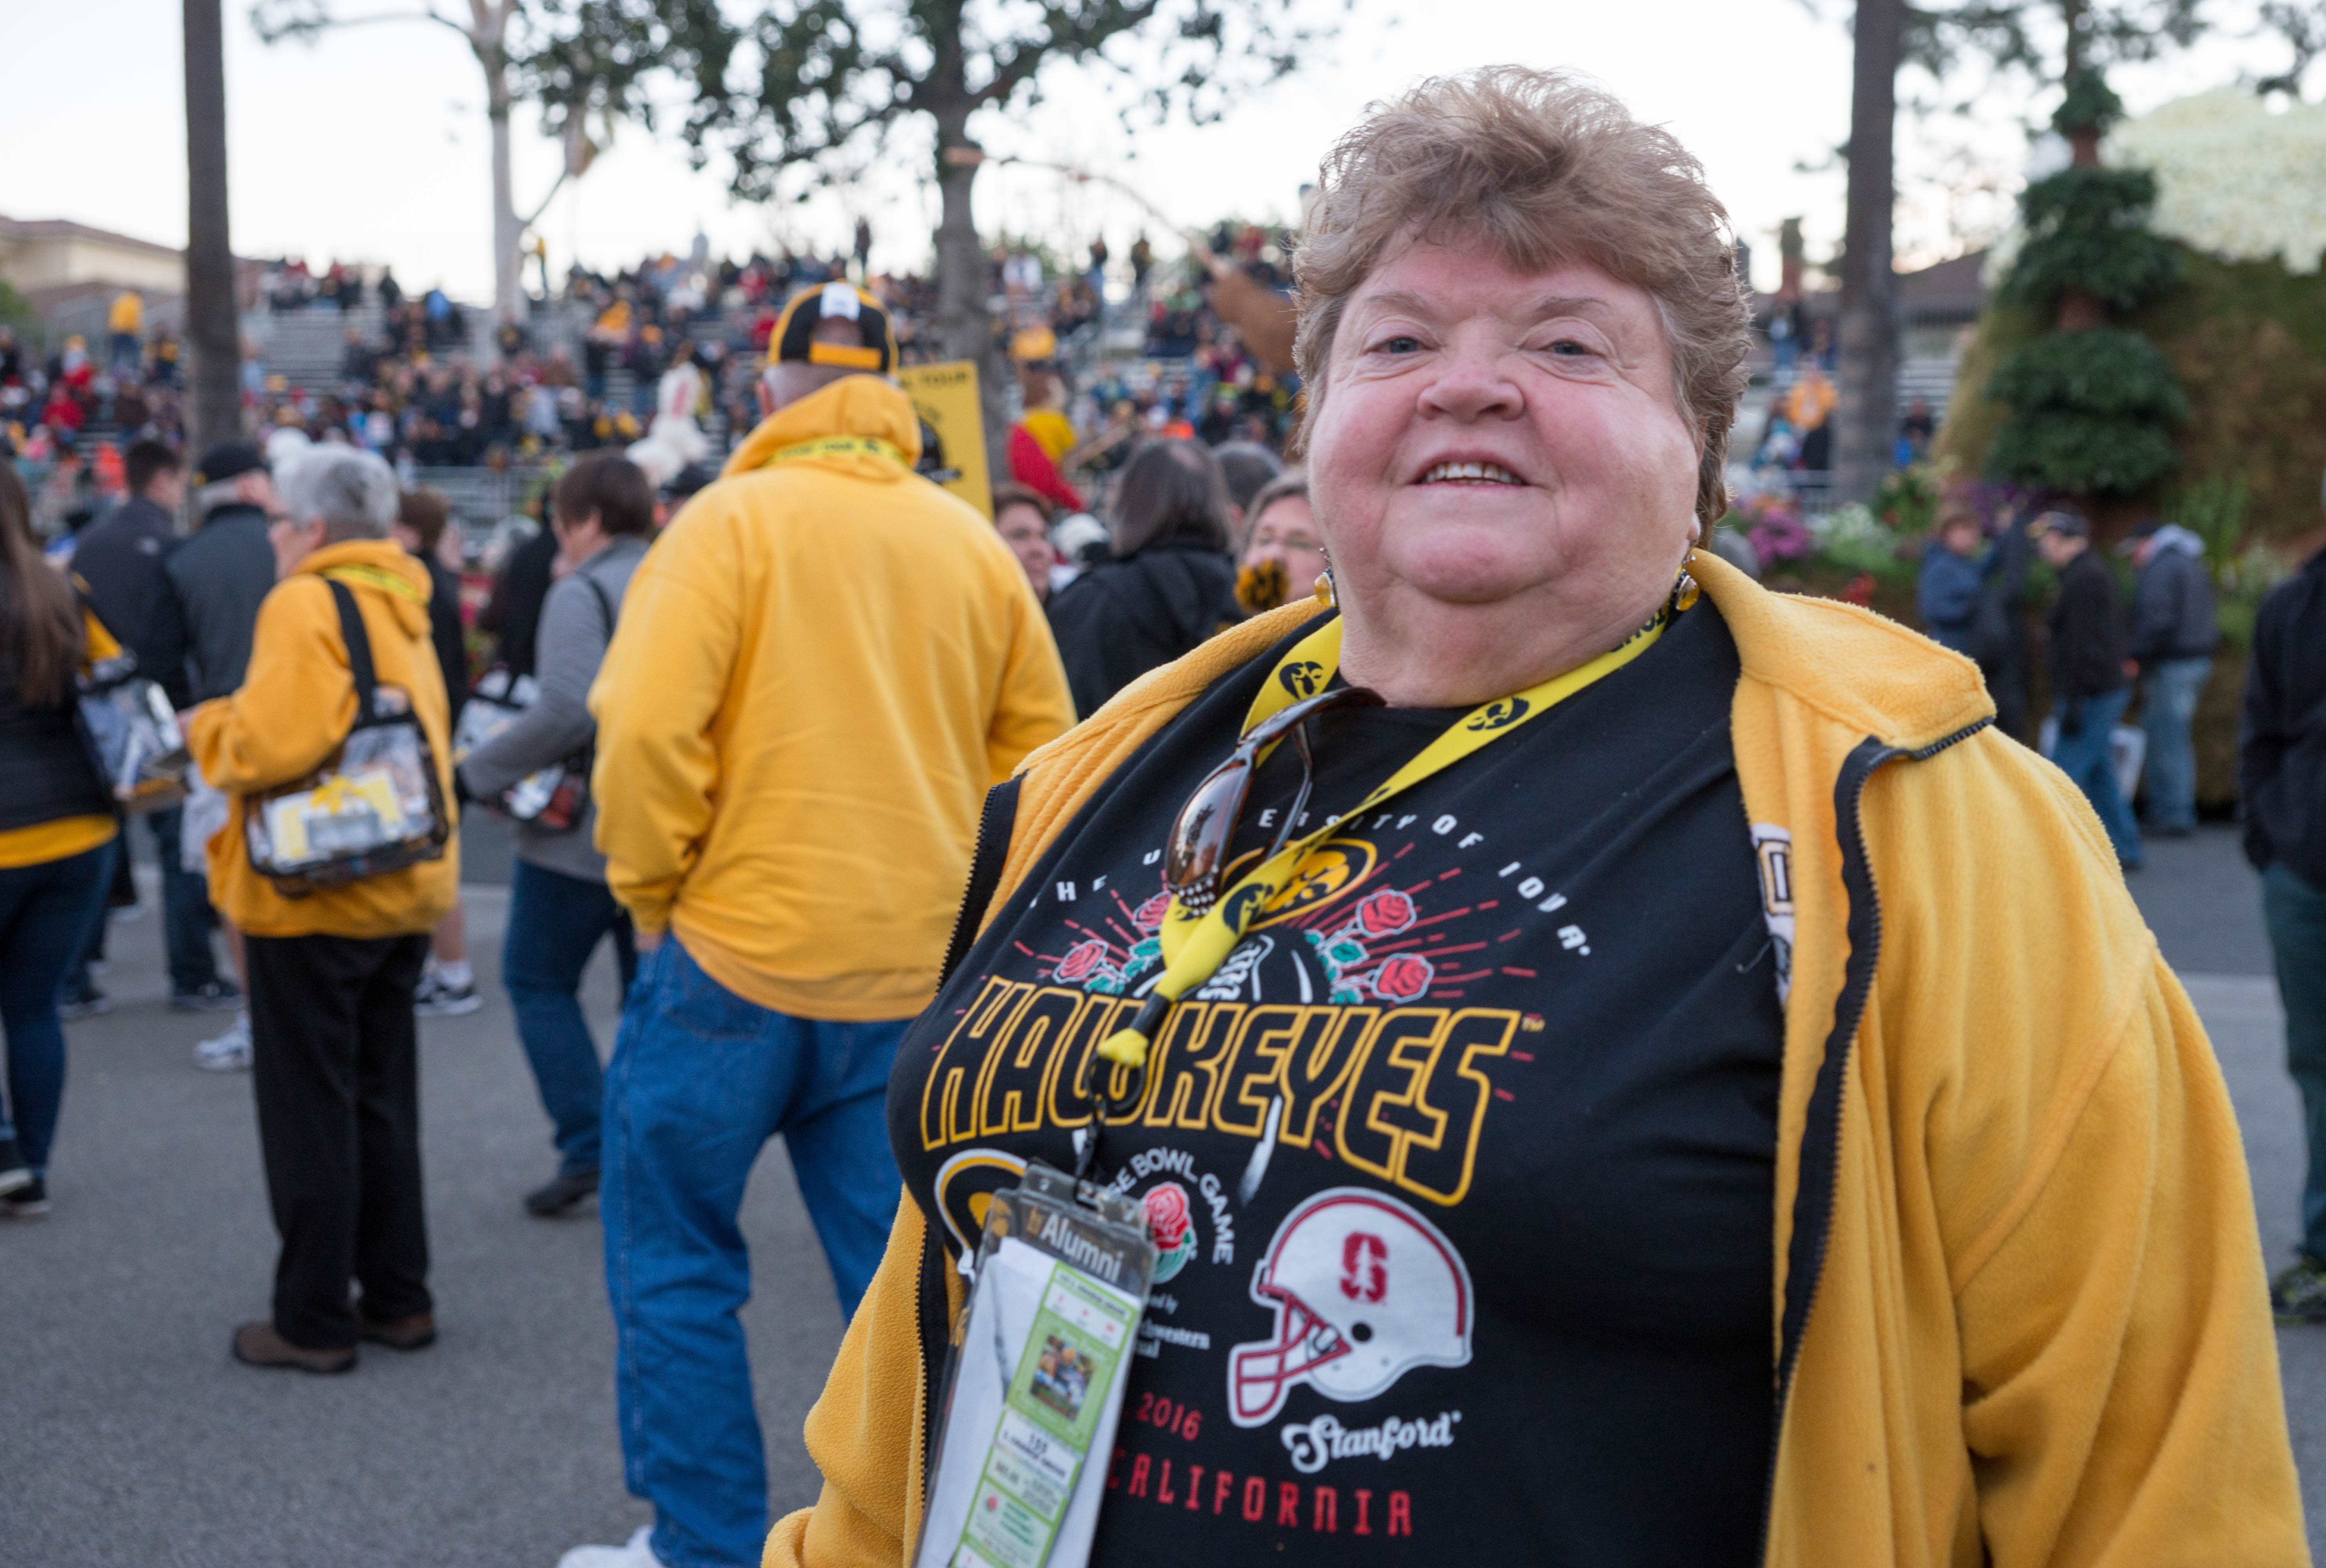 Arlene Miller from North Liberty, Iowa, is crossing an item off her and her husband's bucket list.